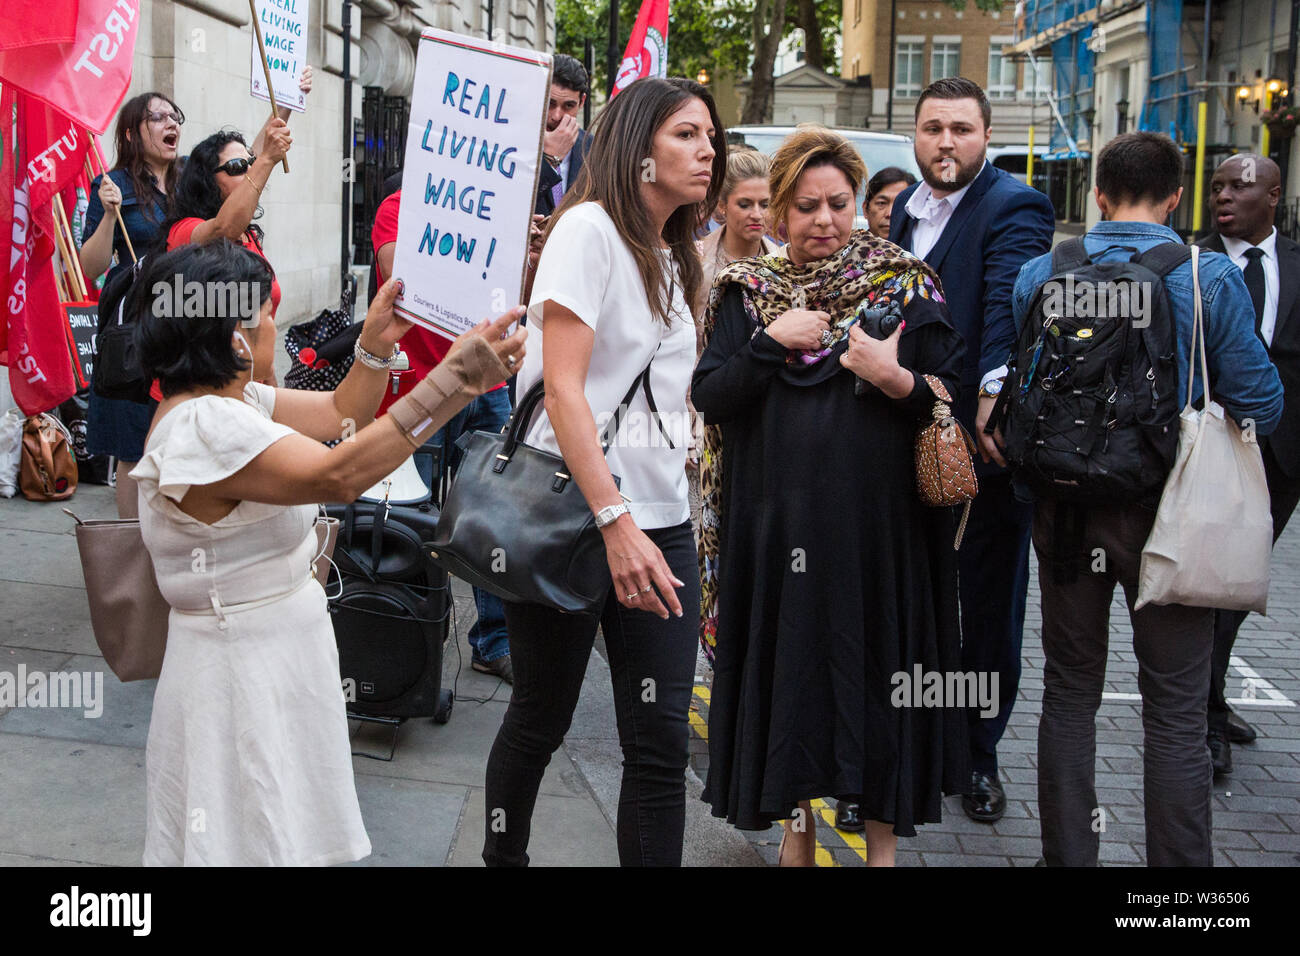 London, UK  12 July, 2019  Members of the Cleaners and Facilities